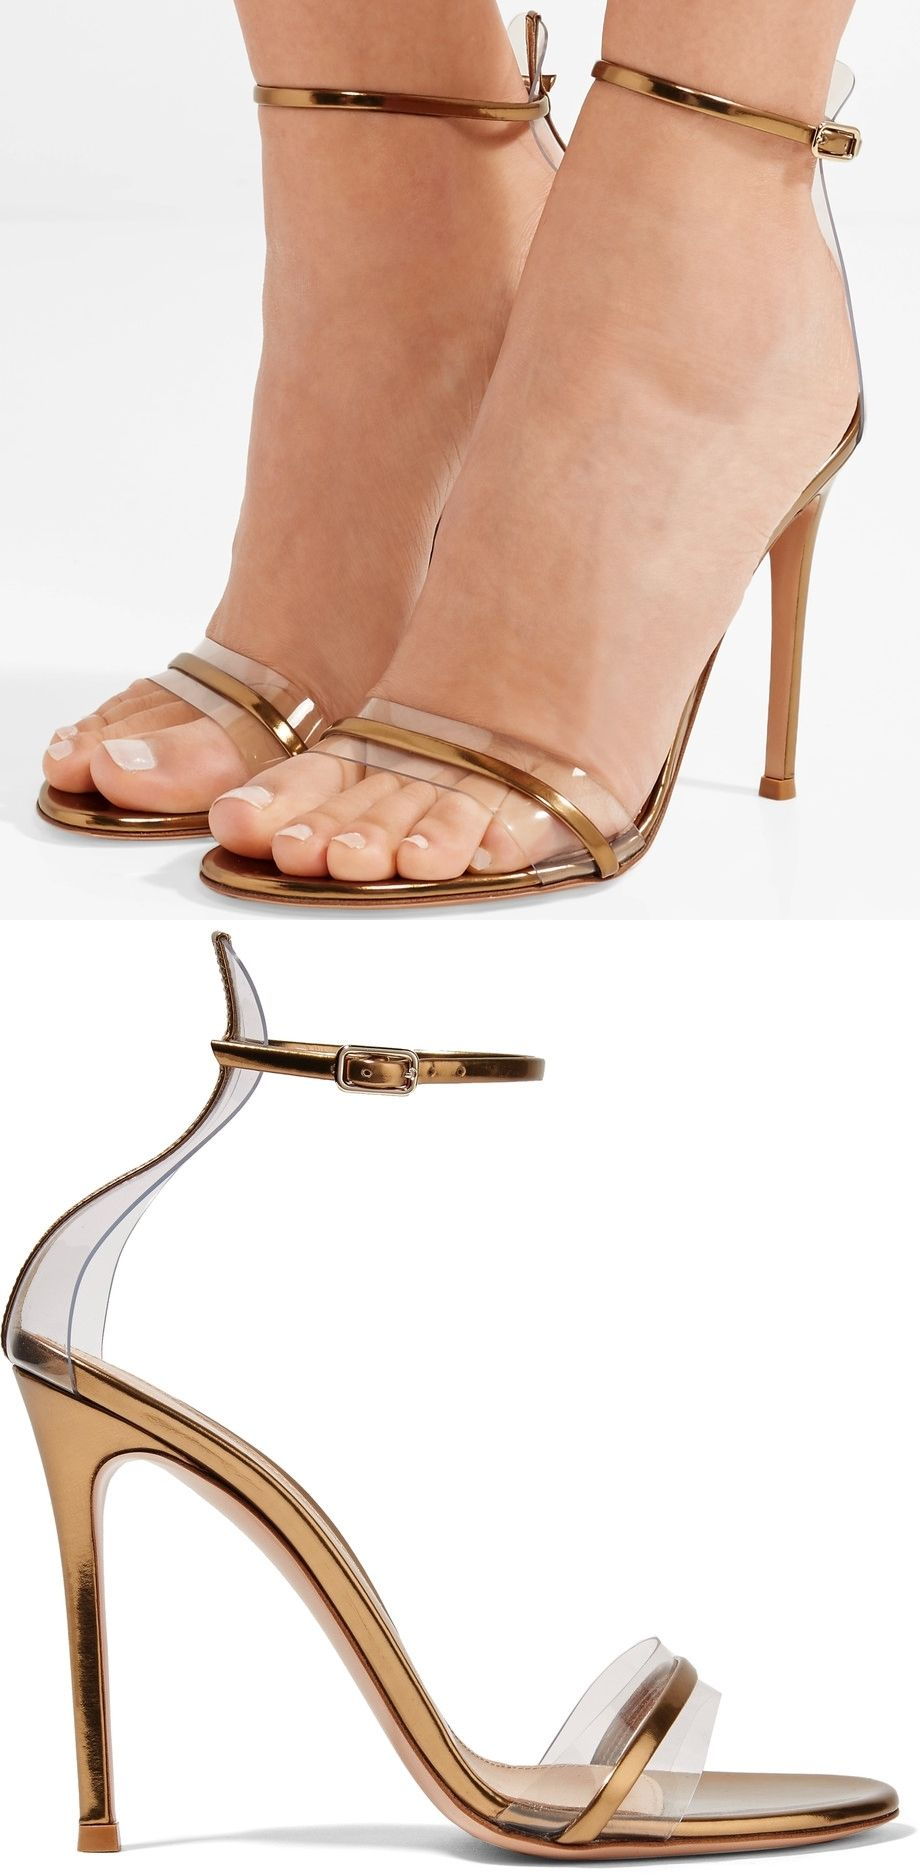 Gianvito Rossi Updates His Signature Portofino Sandals With Clear Pvc Trims Made From Gold Leather This Pair Has Two Ankle Strap Heels Stiletto Heels Heels